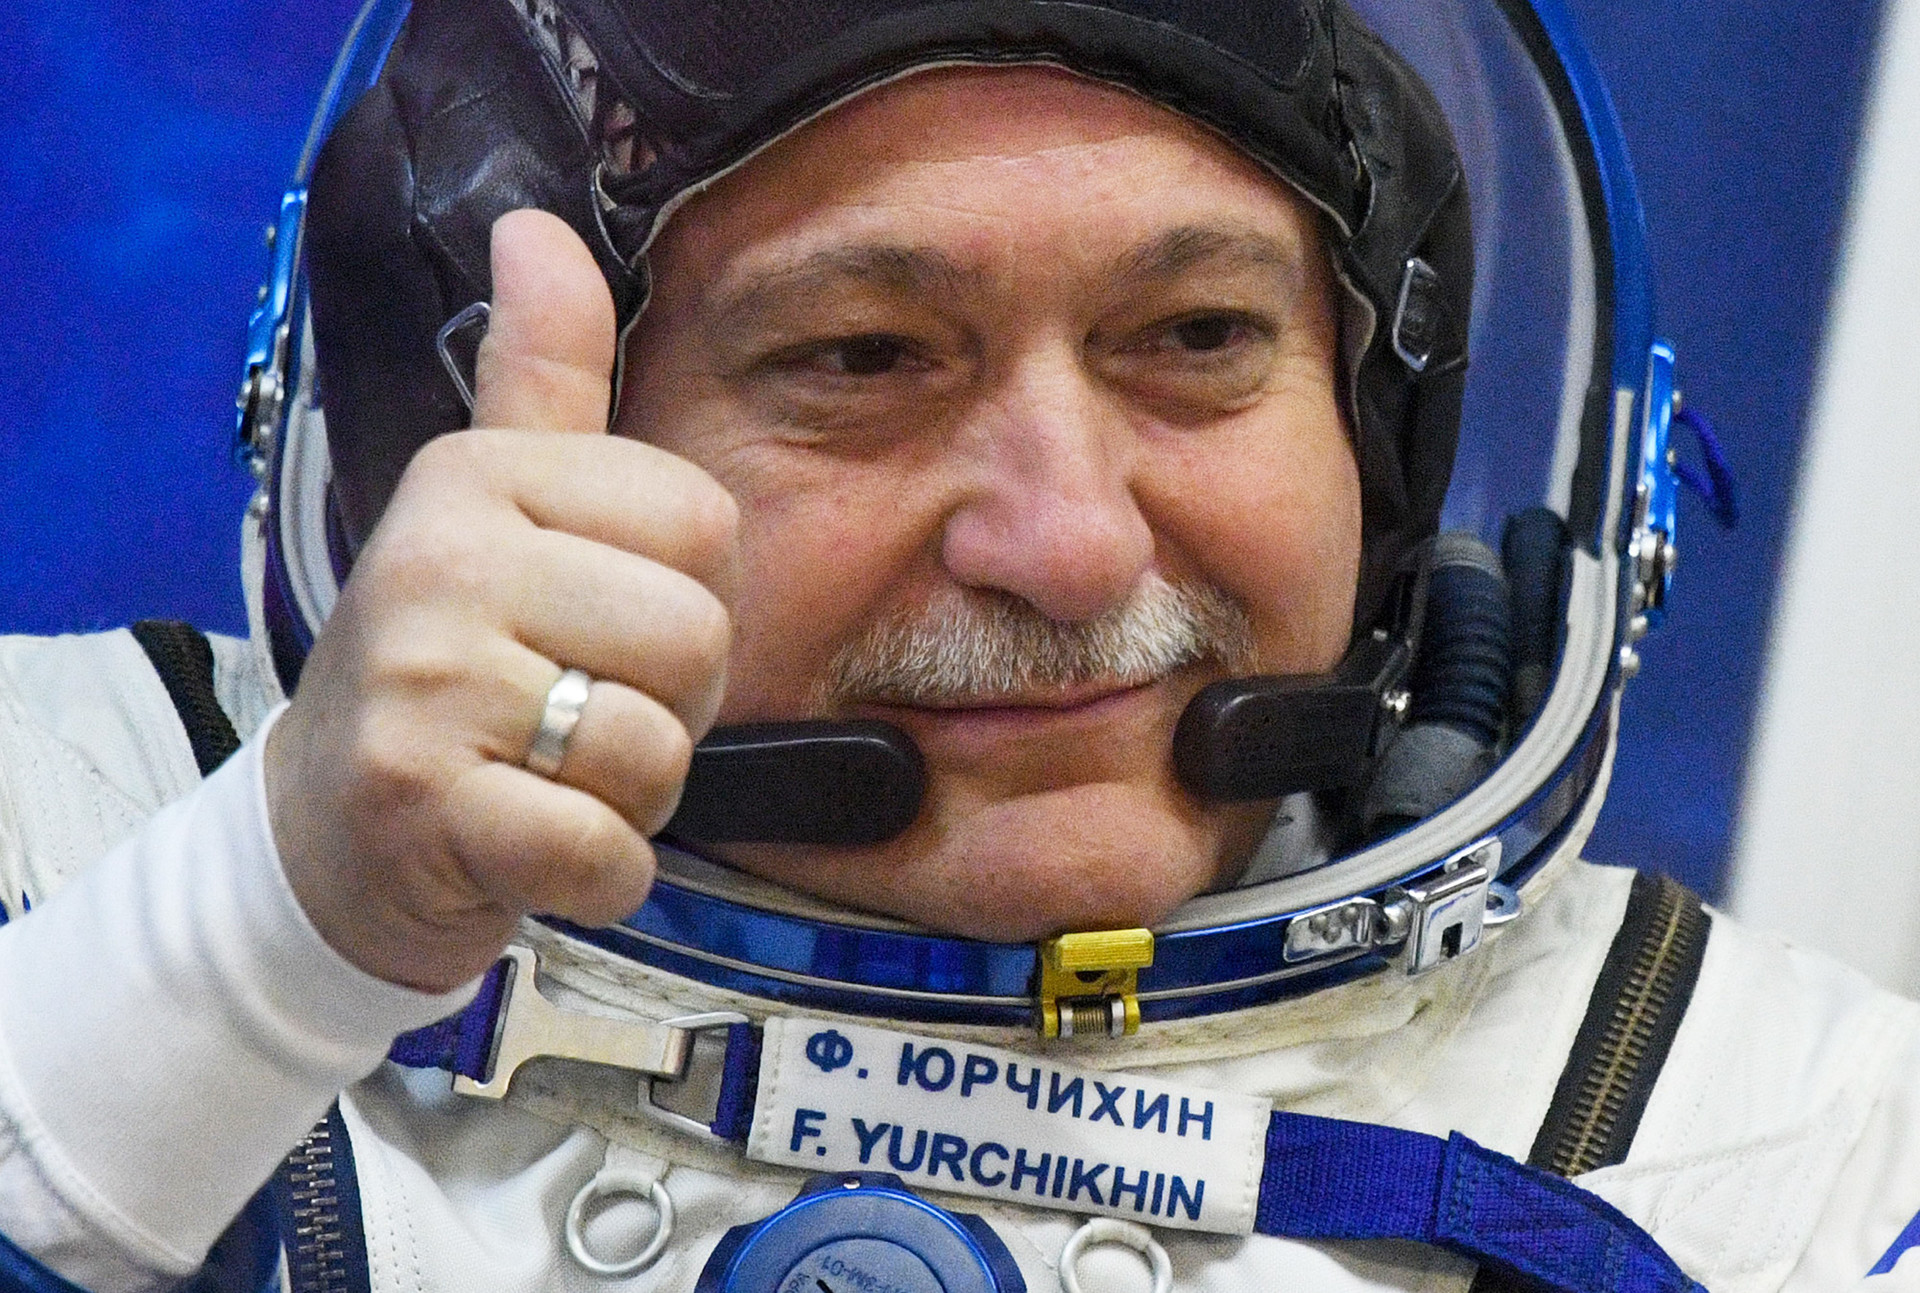 Just how superstitious are Russian cosmonauts  - Russia Beyond 232d05c93a4